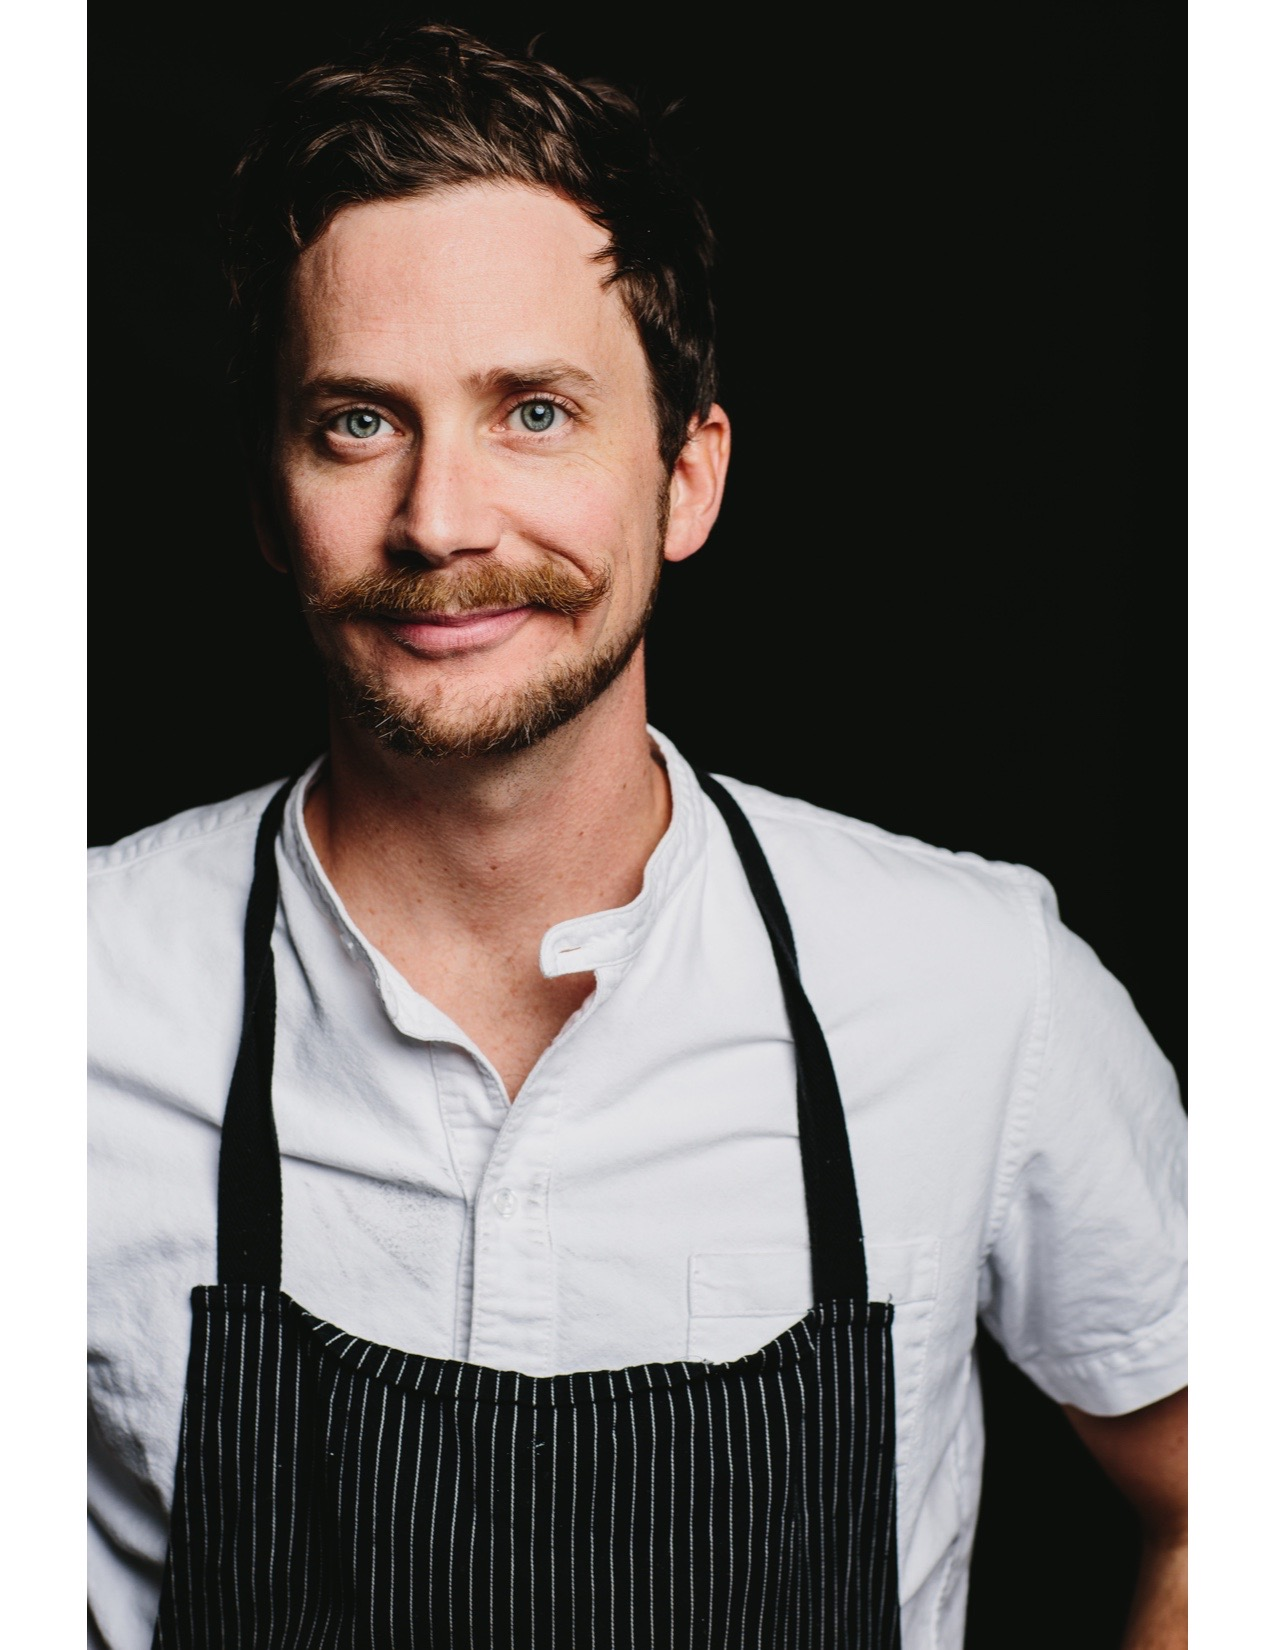 Chef Adam Evans, formerly of the The Optimist, is opening a restaurant in Birmingham